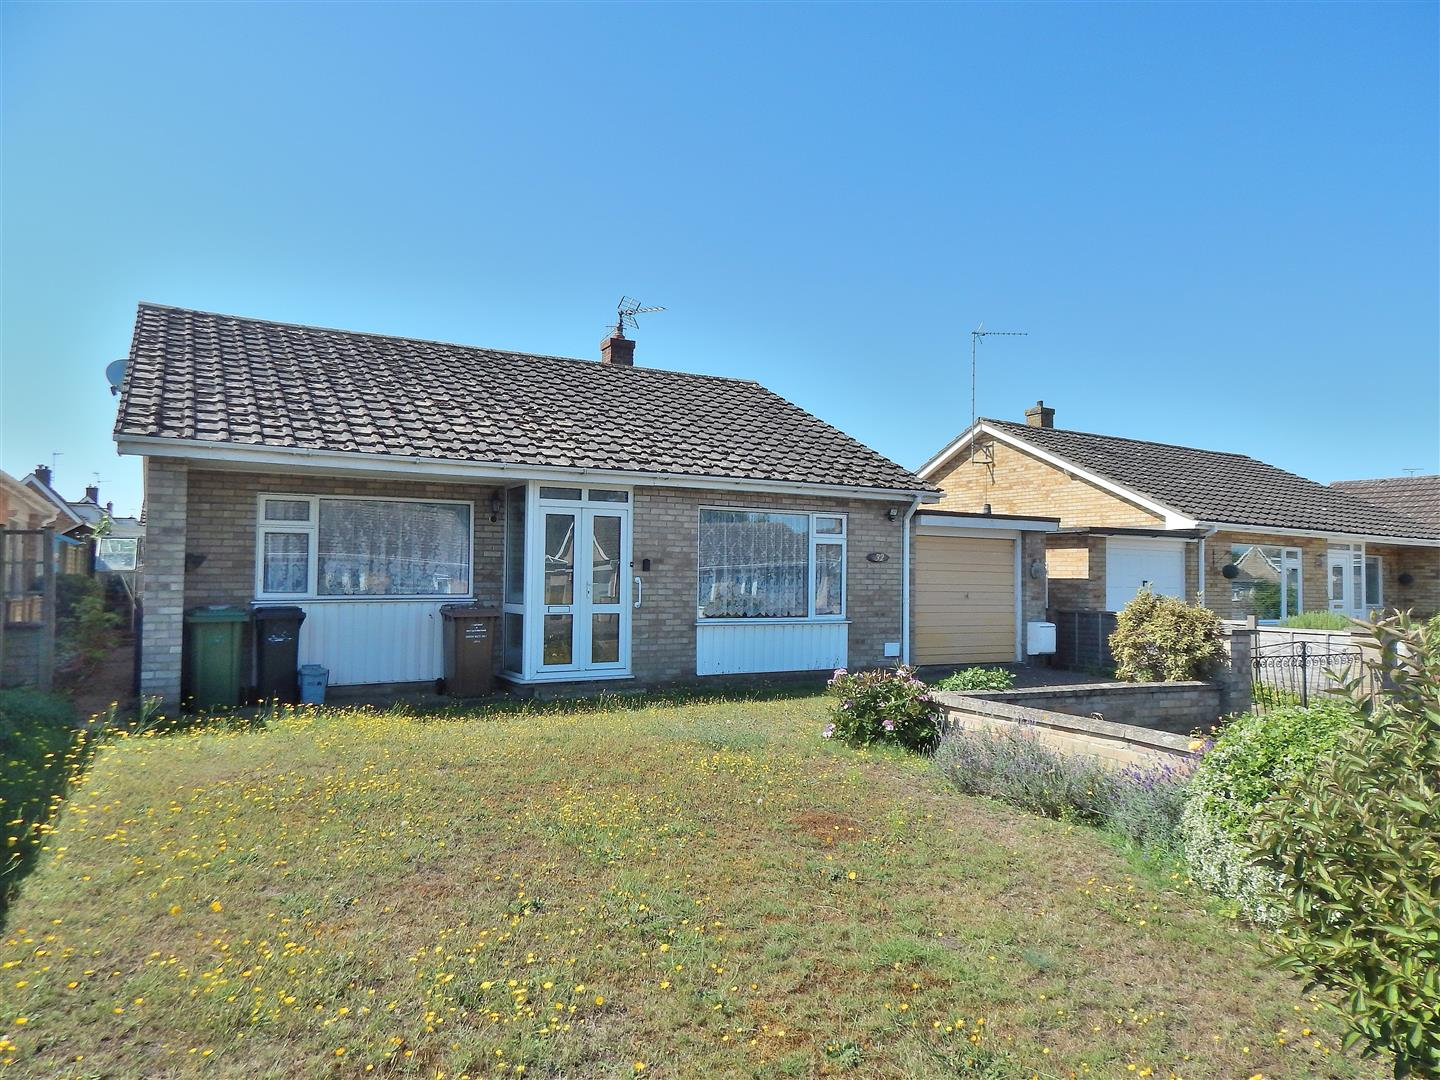 2 bed detached bungalow for sale in Onedin Close, King's Lynn - Property Image 1